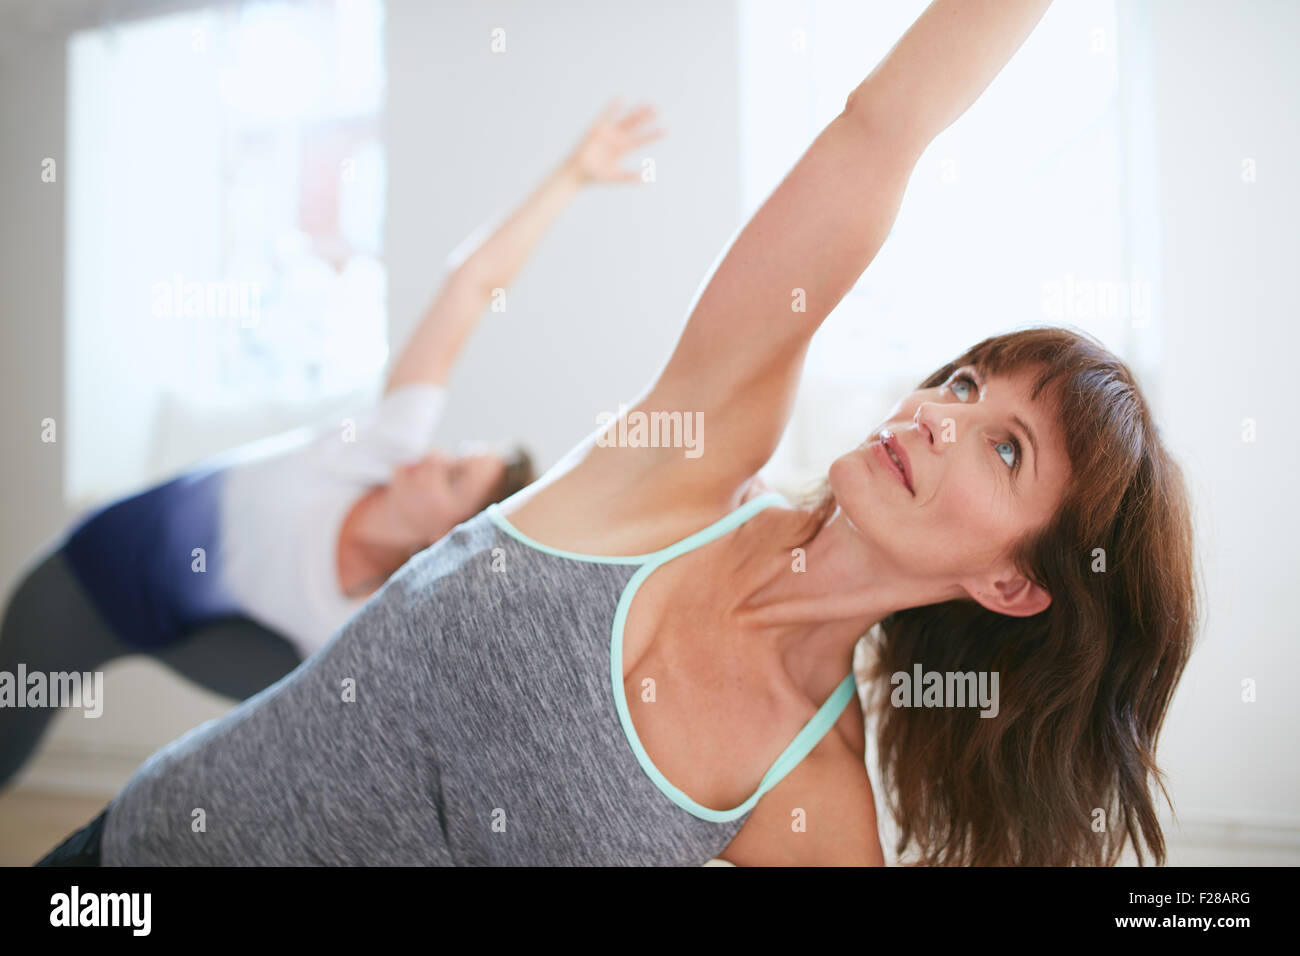 Portrait of mature woman practicing yoga at gym. Fitness female doing Triangle yoga Pose, Trikonasana. Stock Photo